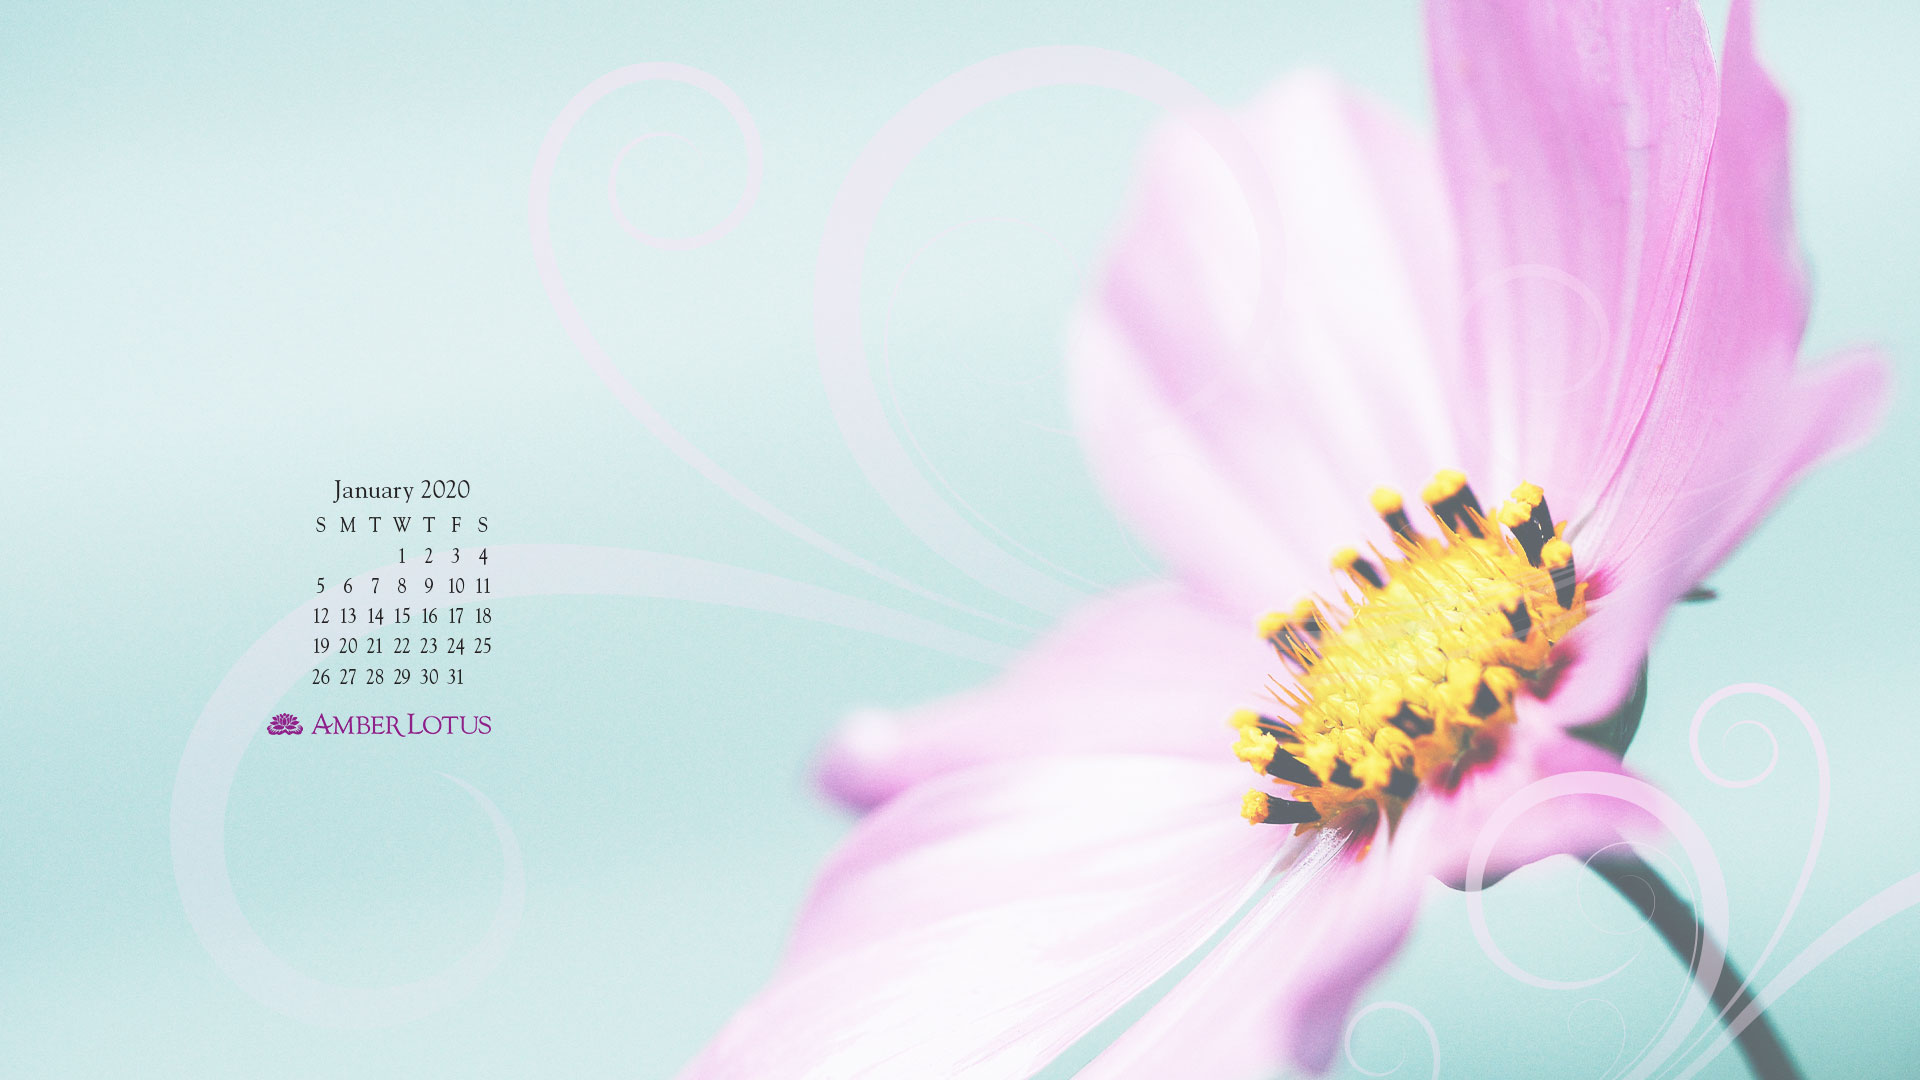 Desktop Wallpaper Calendar January 2020 Free To Download